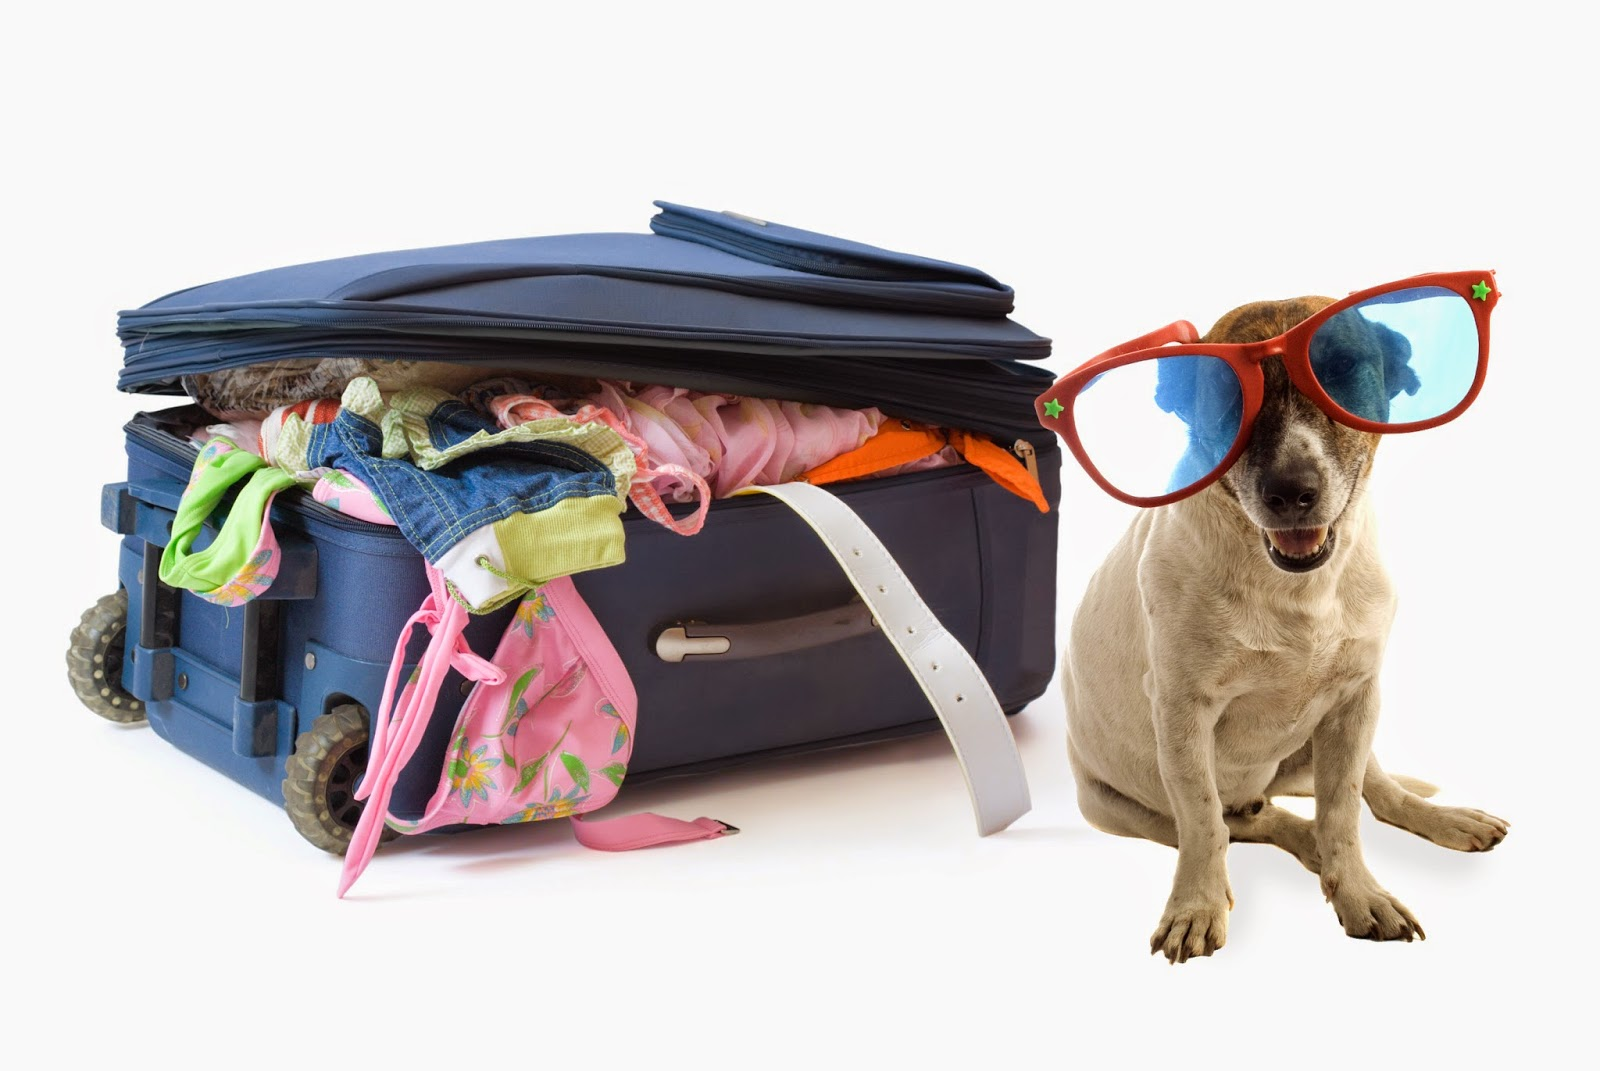 Board of holiday travel with your pet